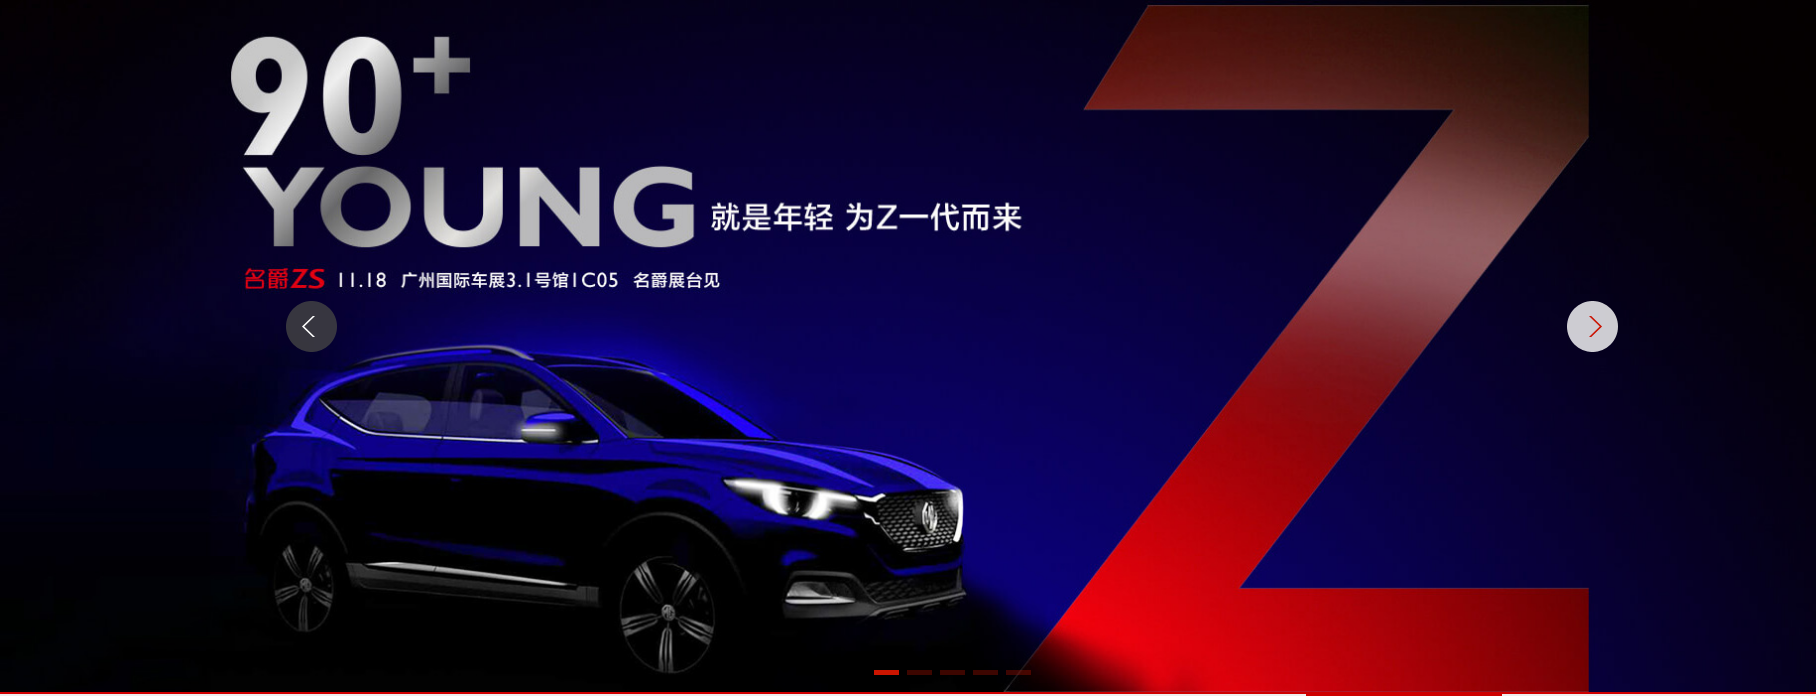 MG ZS SUV Previewed Before Guangzhou Show